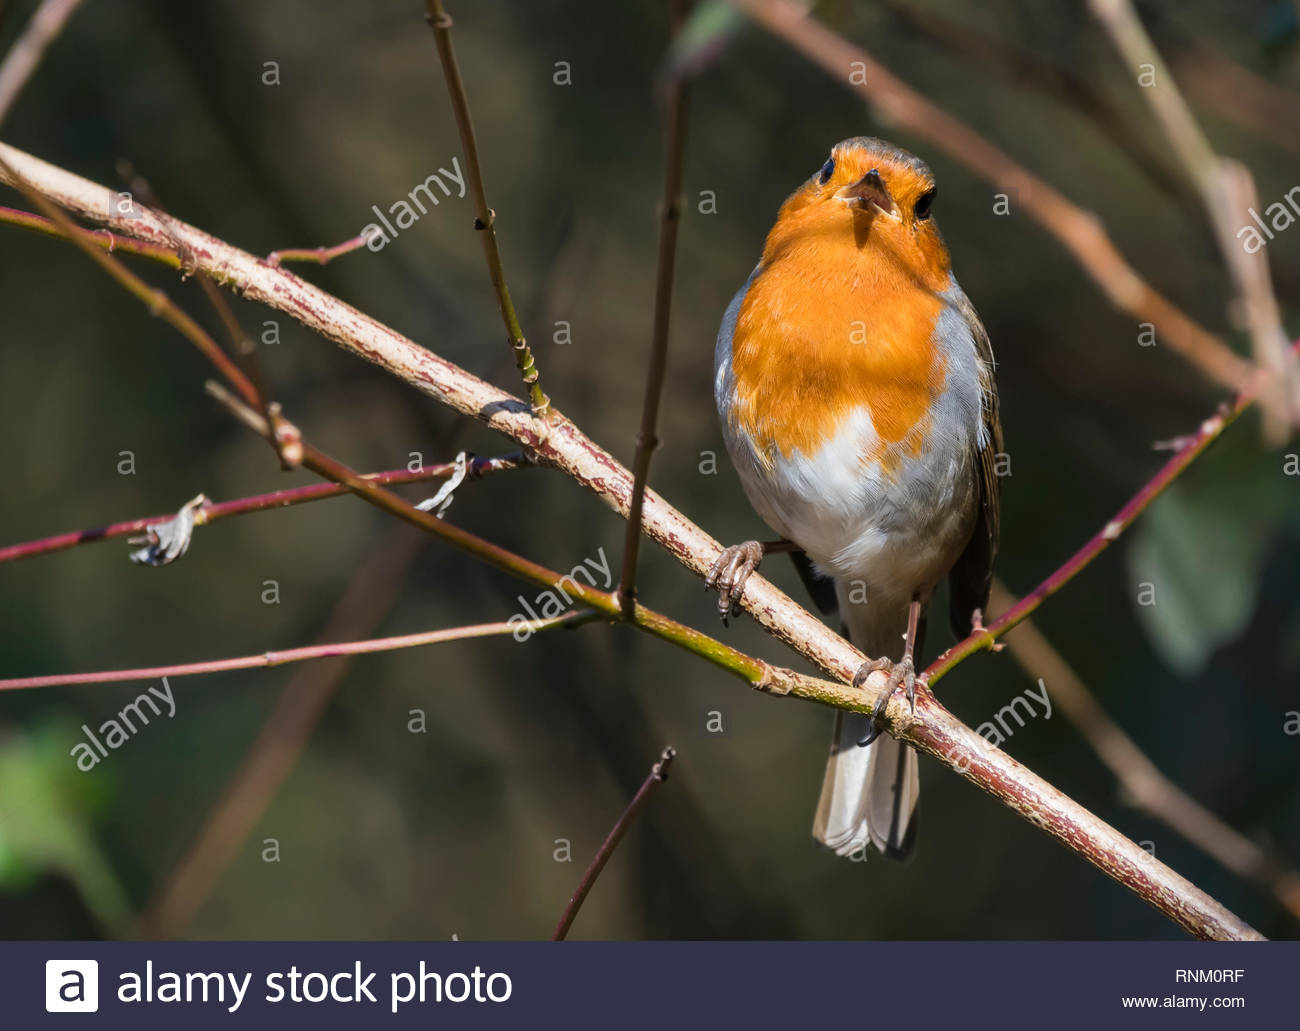 British (Melophilus) Adult European Robin Redbreast (Erithacus rubecula) perched on a twig in Winter (February) in West Sussex, England, UK. - Stock Image